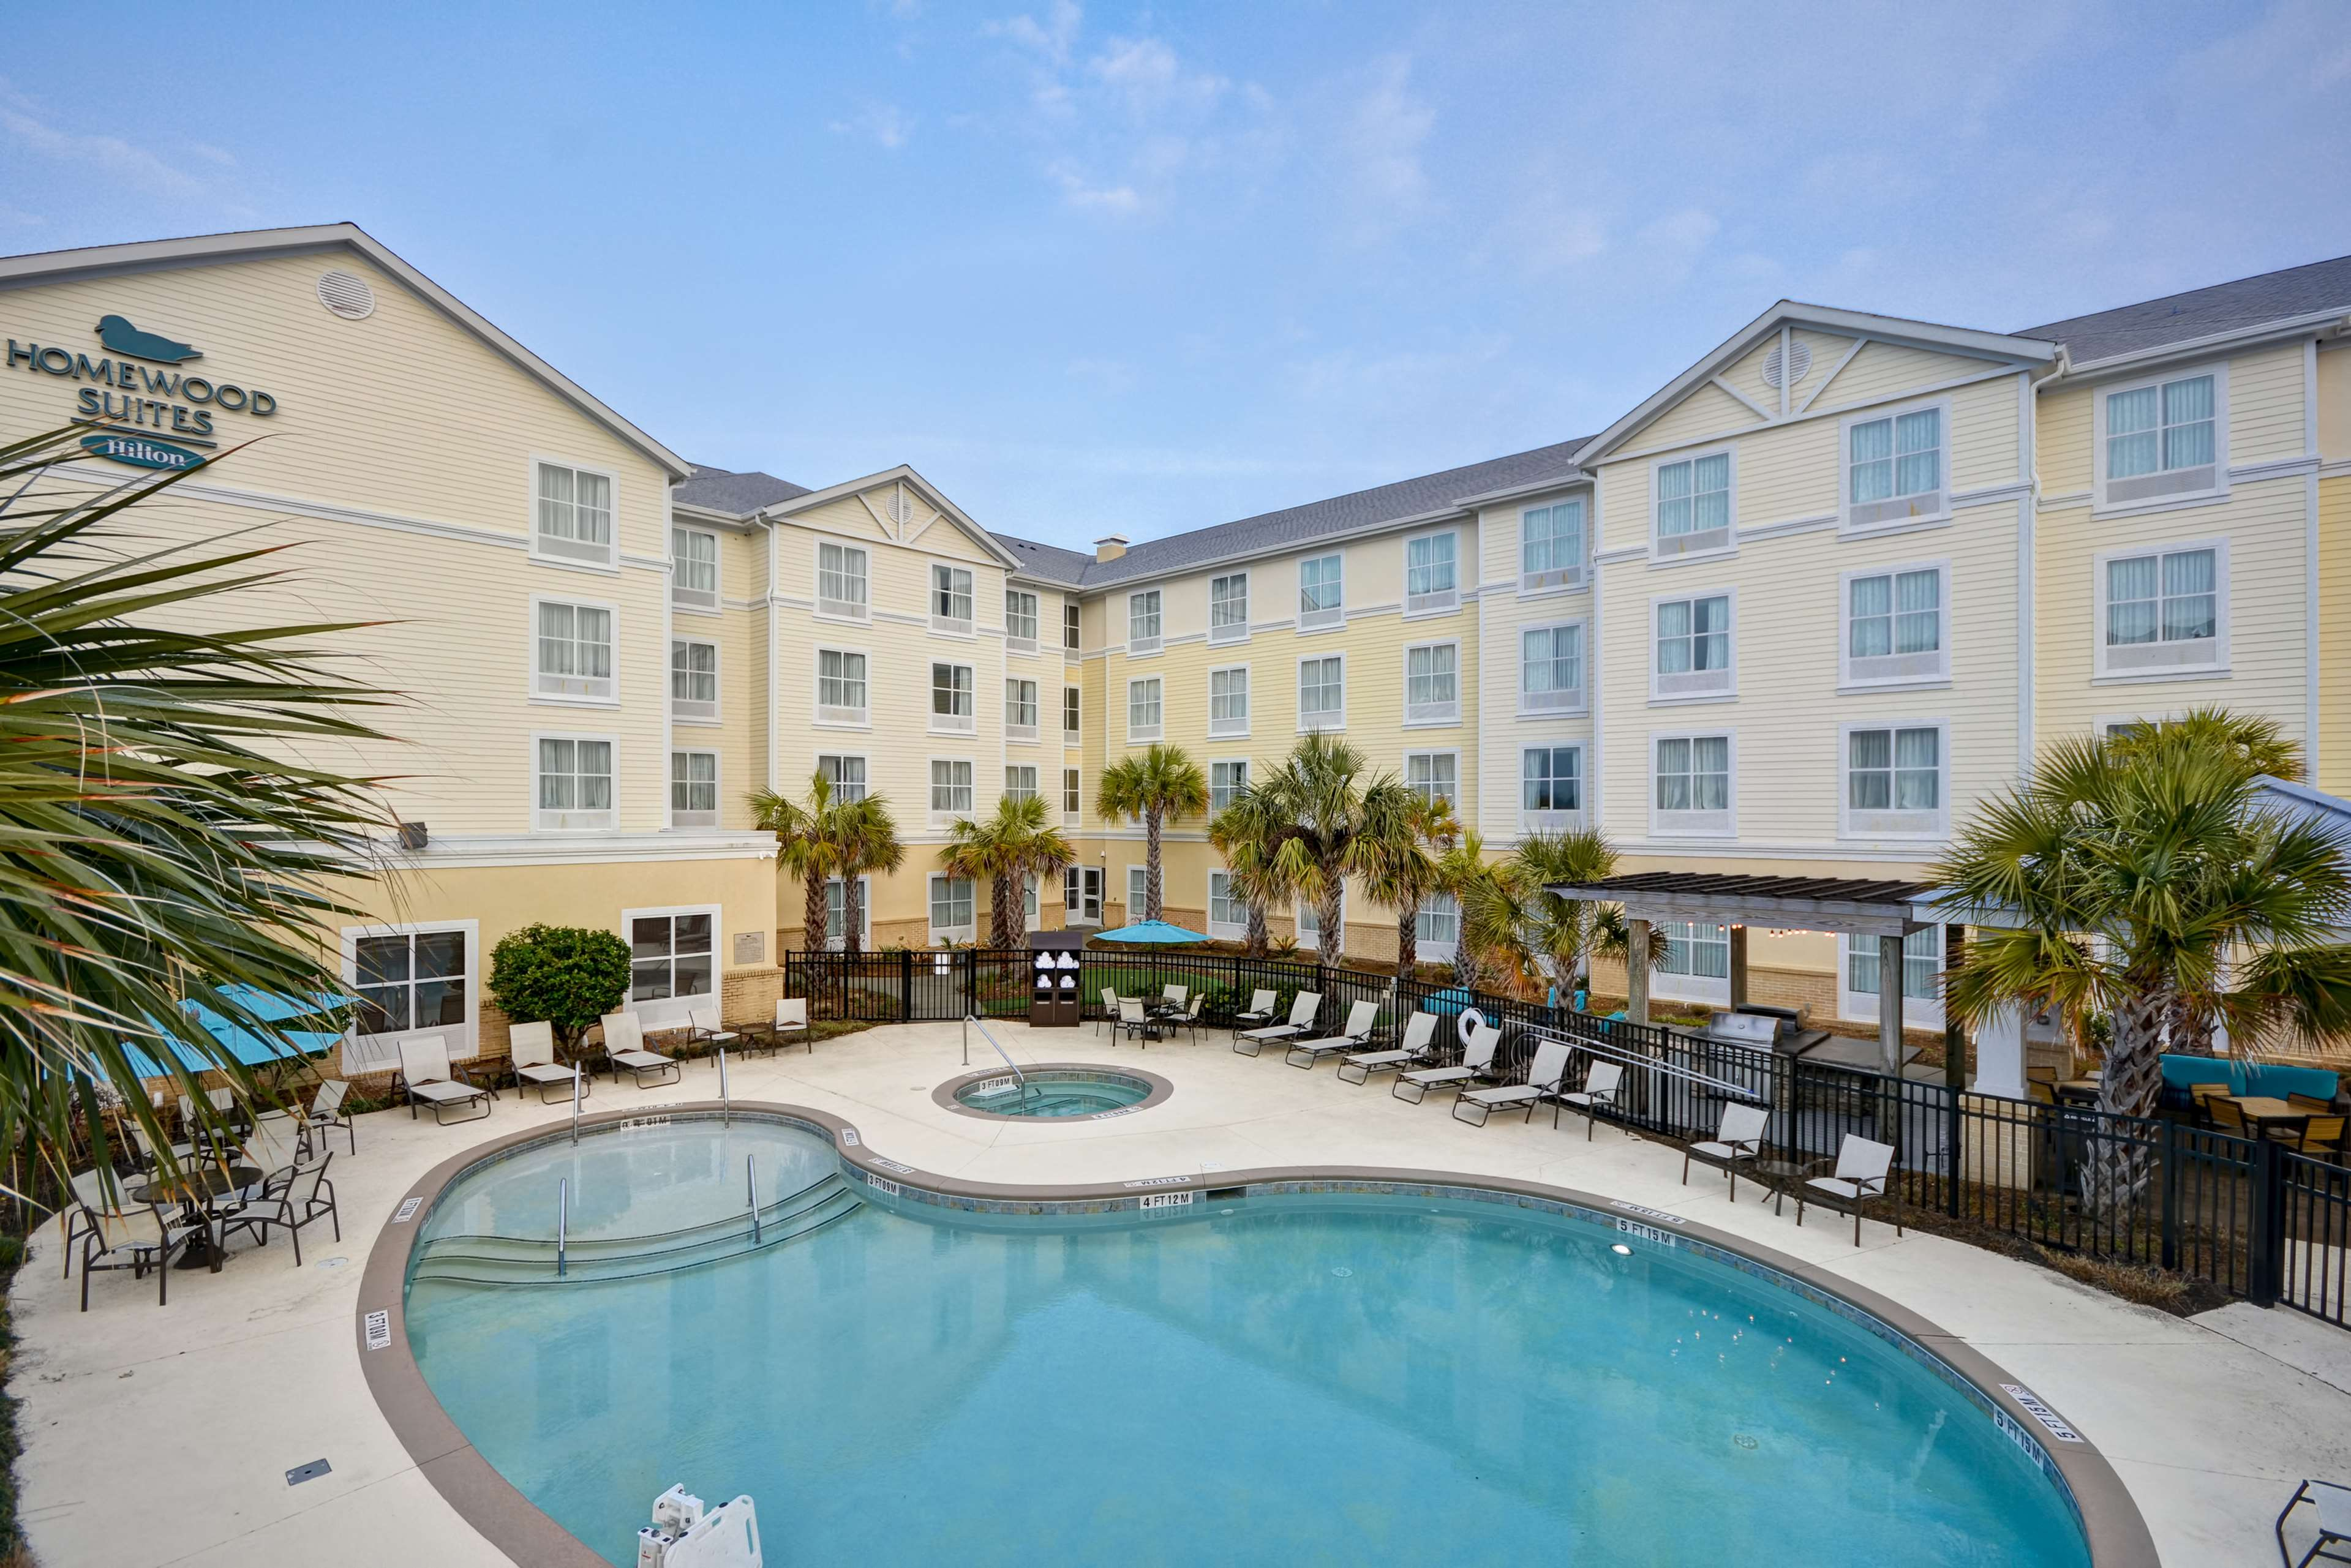 Homewood Suites by Hilton Wilmington/Mayfaire, NC image 8